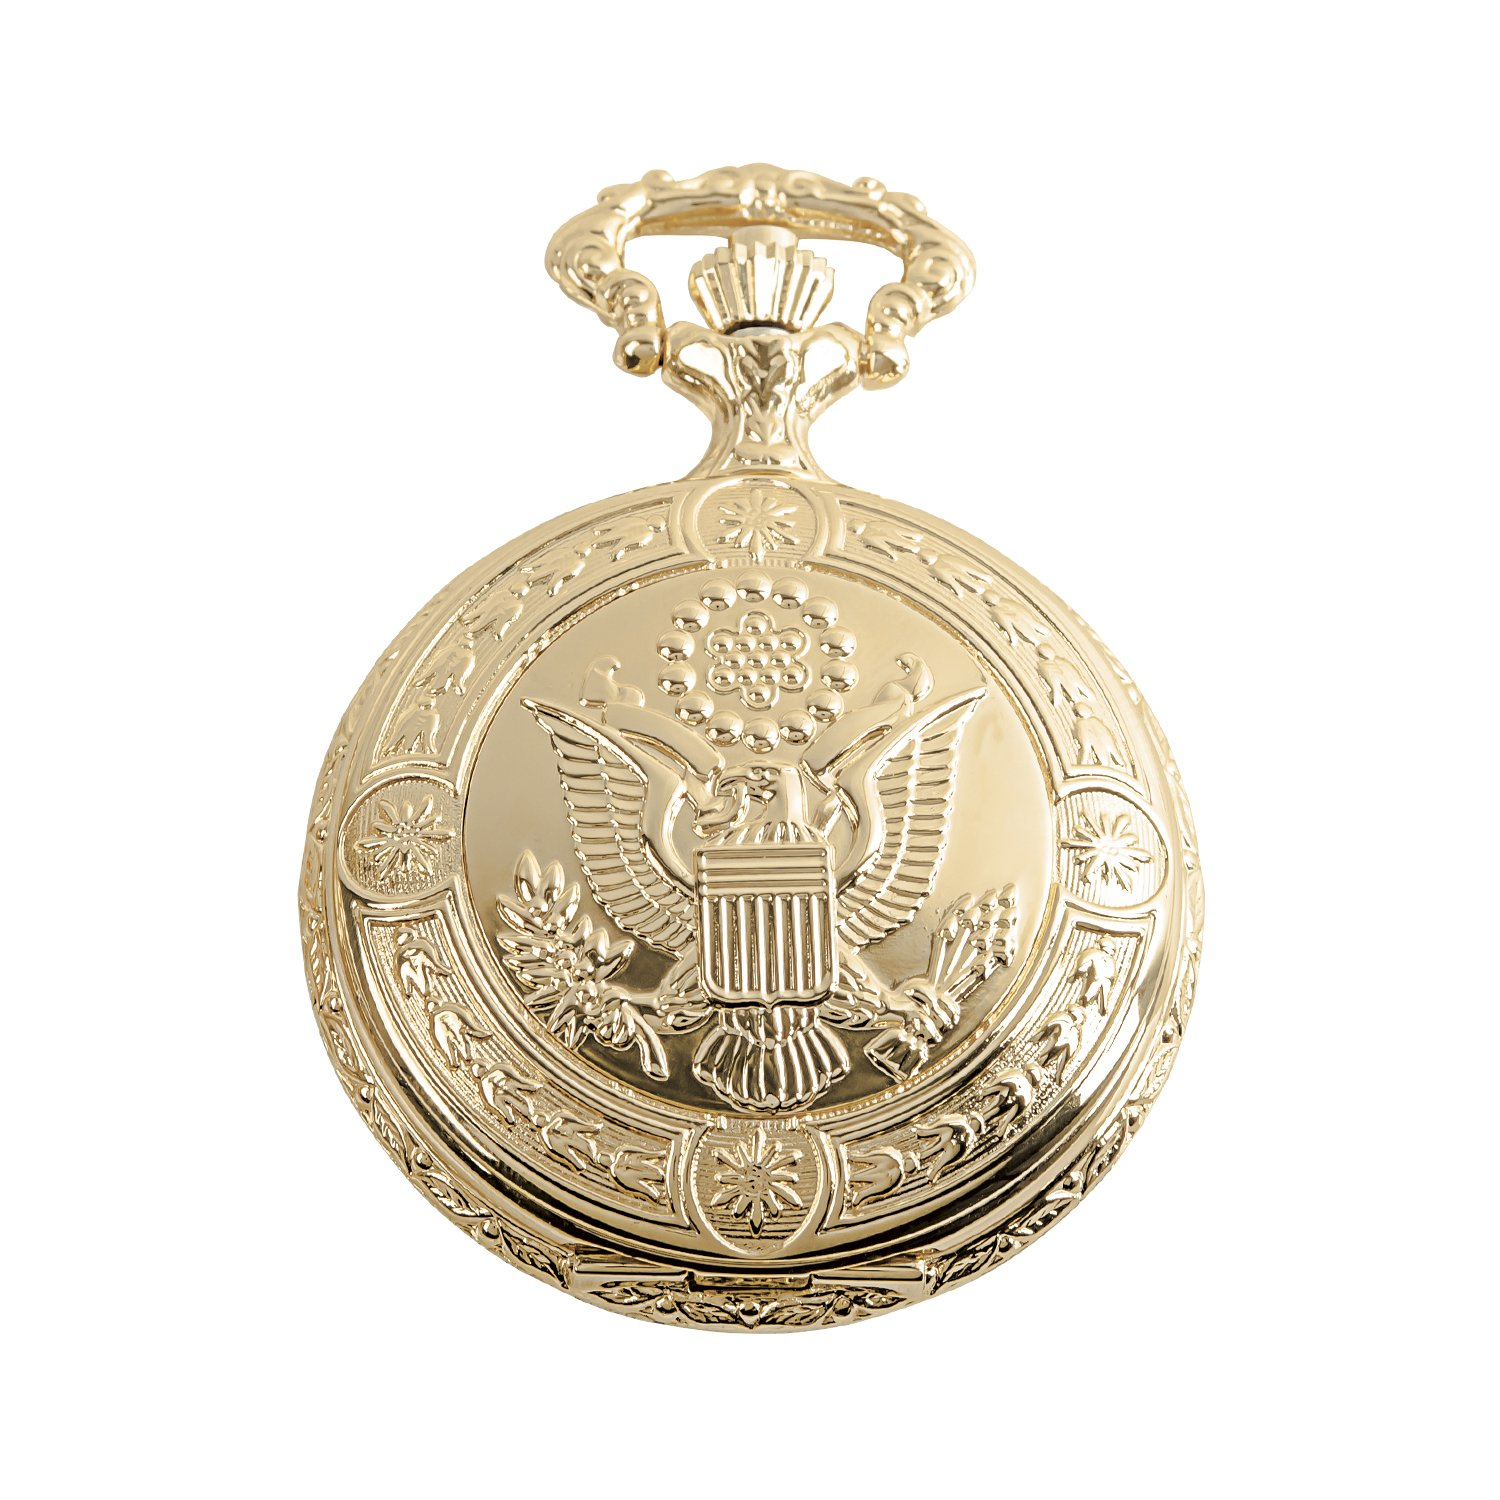 Daniel Steiger American Eagle Luxury Vintage Hunter Pocket Watch with Chain - 18k Gold Plating - Hand-Made Hunter Pocket Watch - Engraved Flying Eagle Design - White Dial with Black Roman Numerals by Daniel Steiger